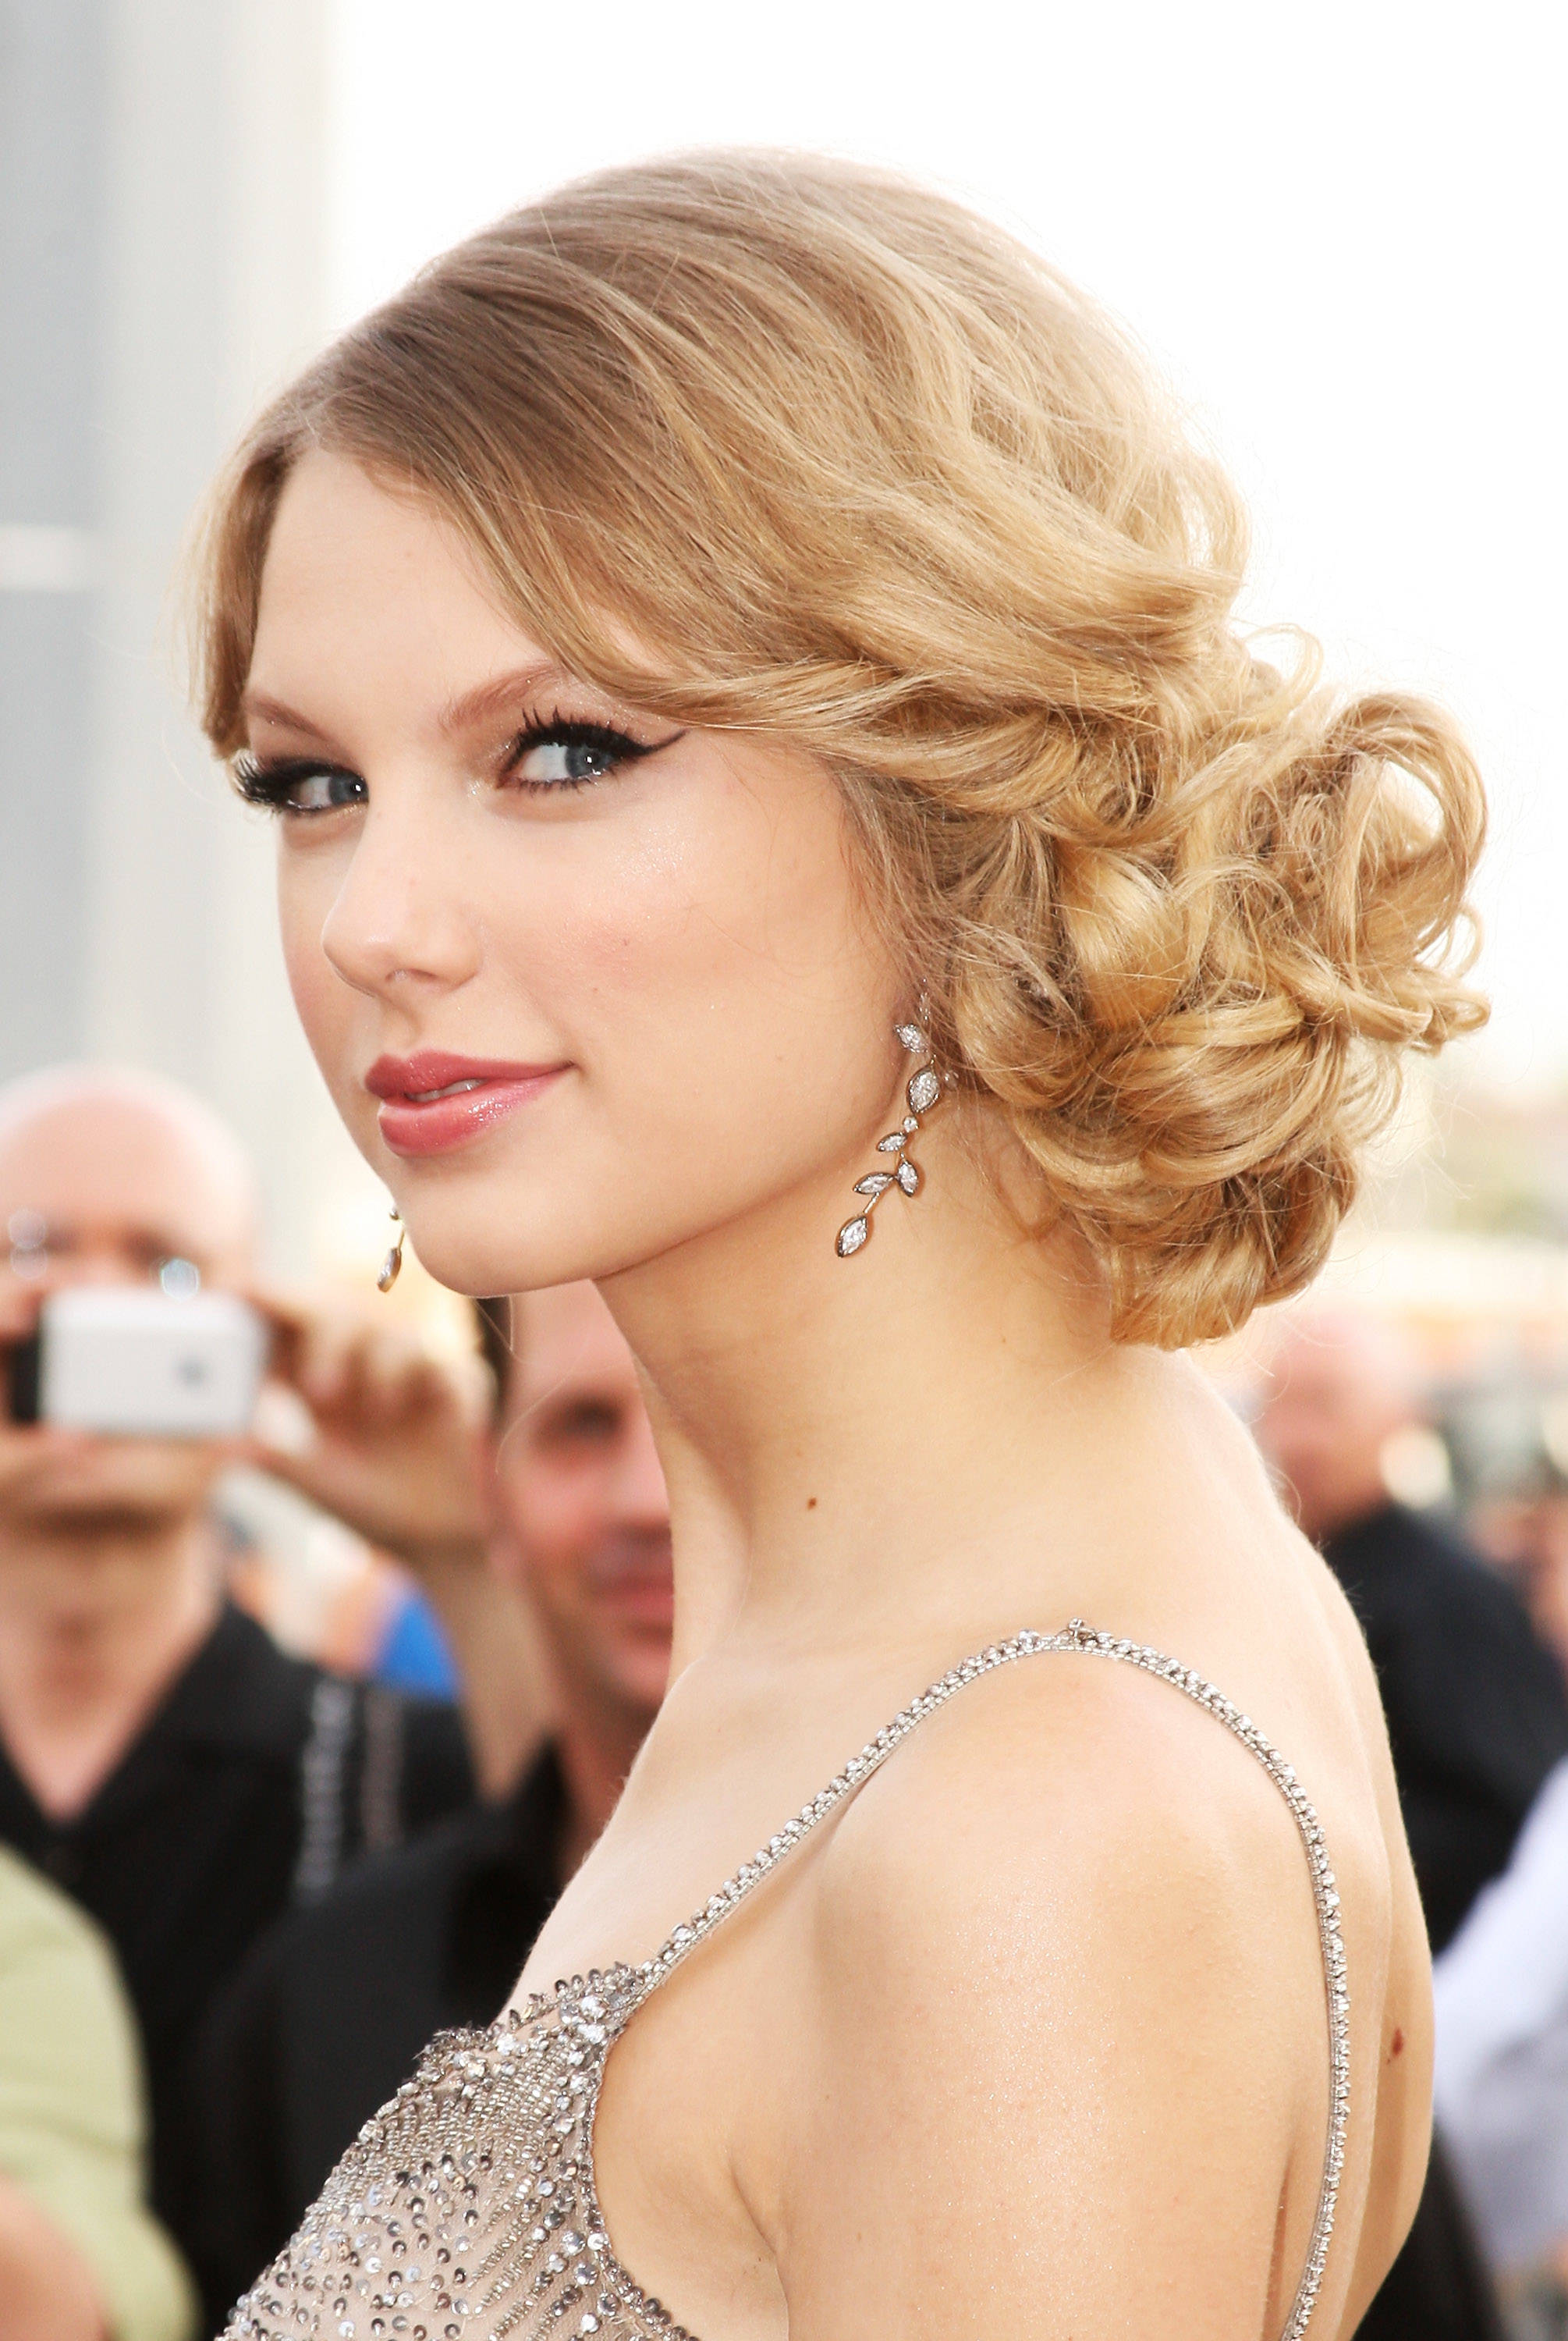 Cute hairstyles for curly hair - 2009 Cmt Music Awards Arrivals